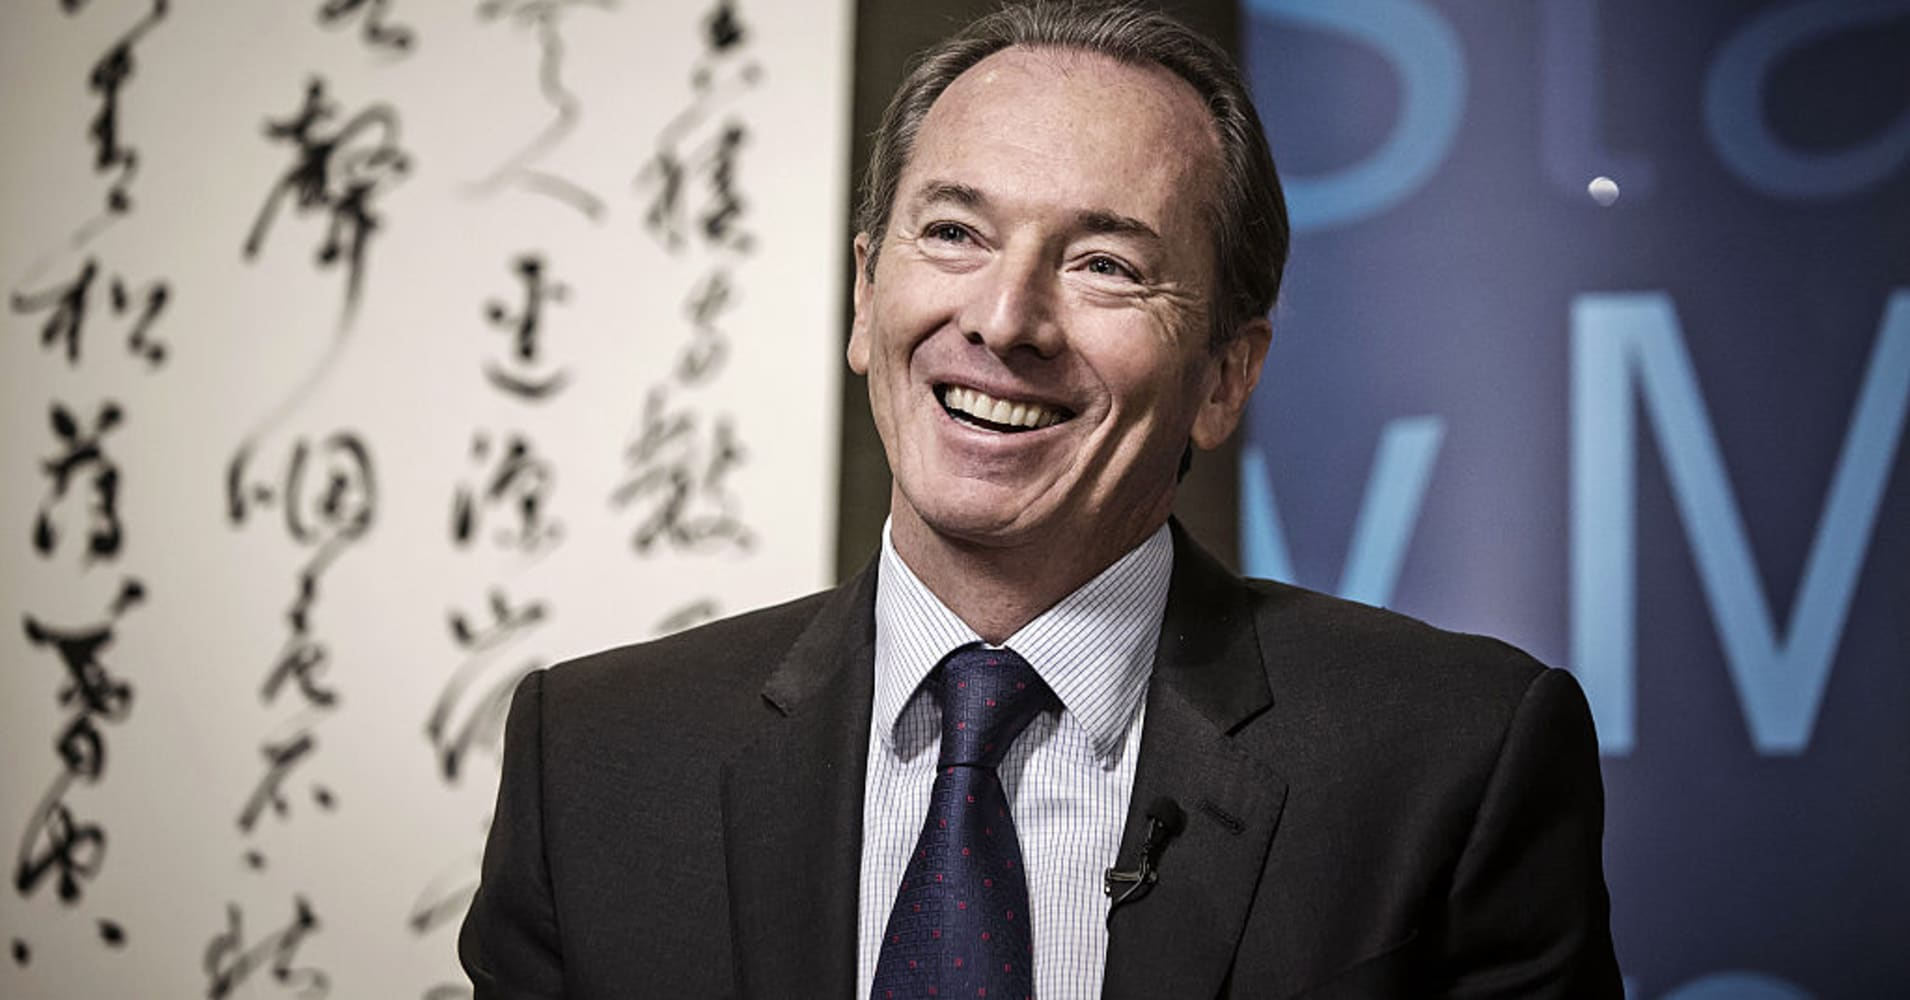 Morgan Stanley Ceo Gorman We Re Not Taking Victory Laps